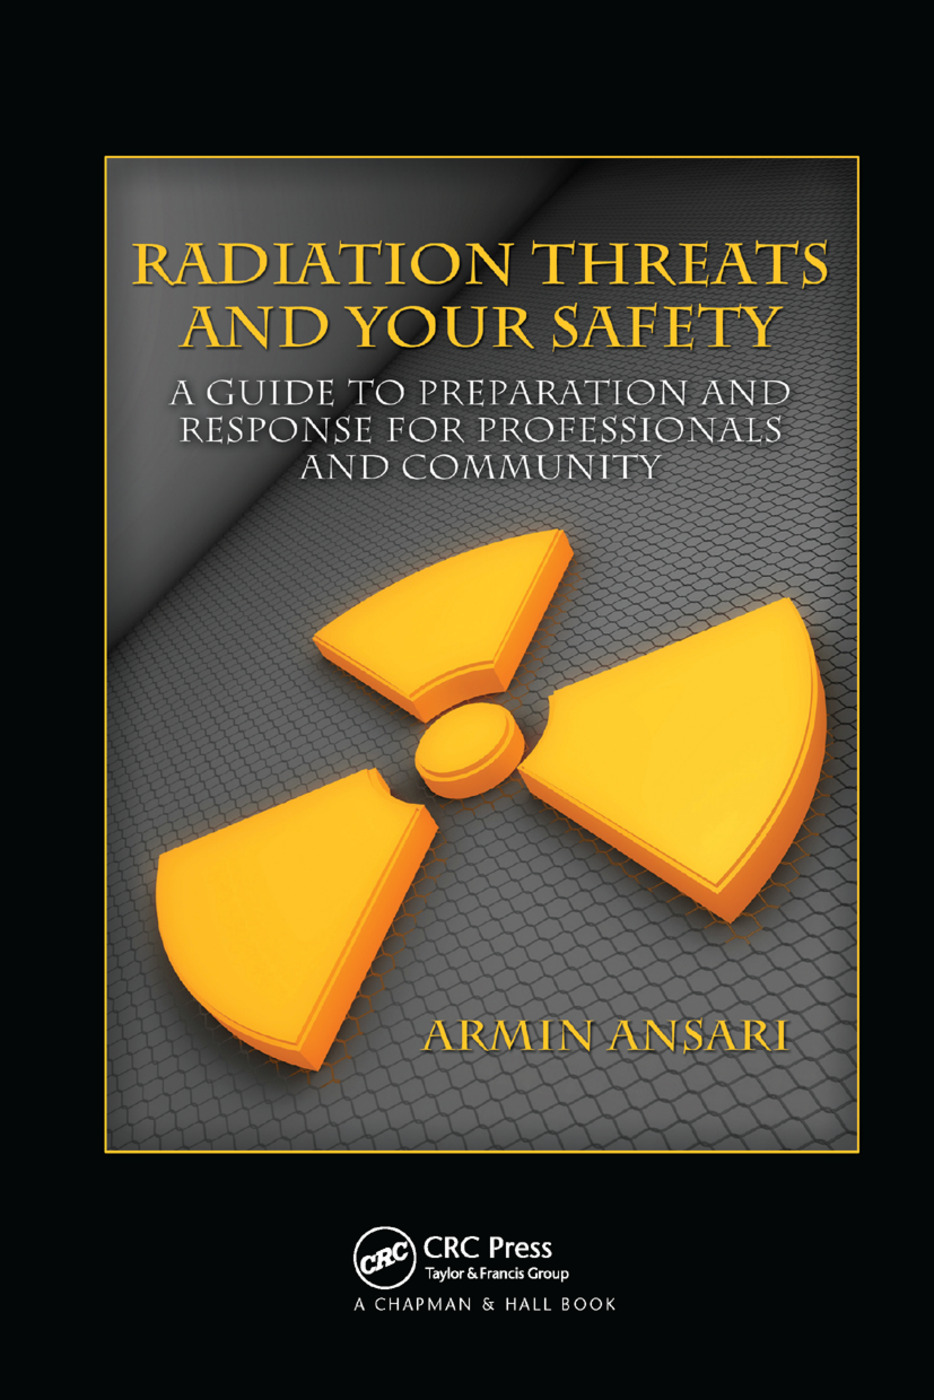 Radiation Threats and Your Safety: A Guide to Preparation and Response for Professionals and Community book cover